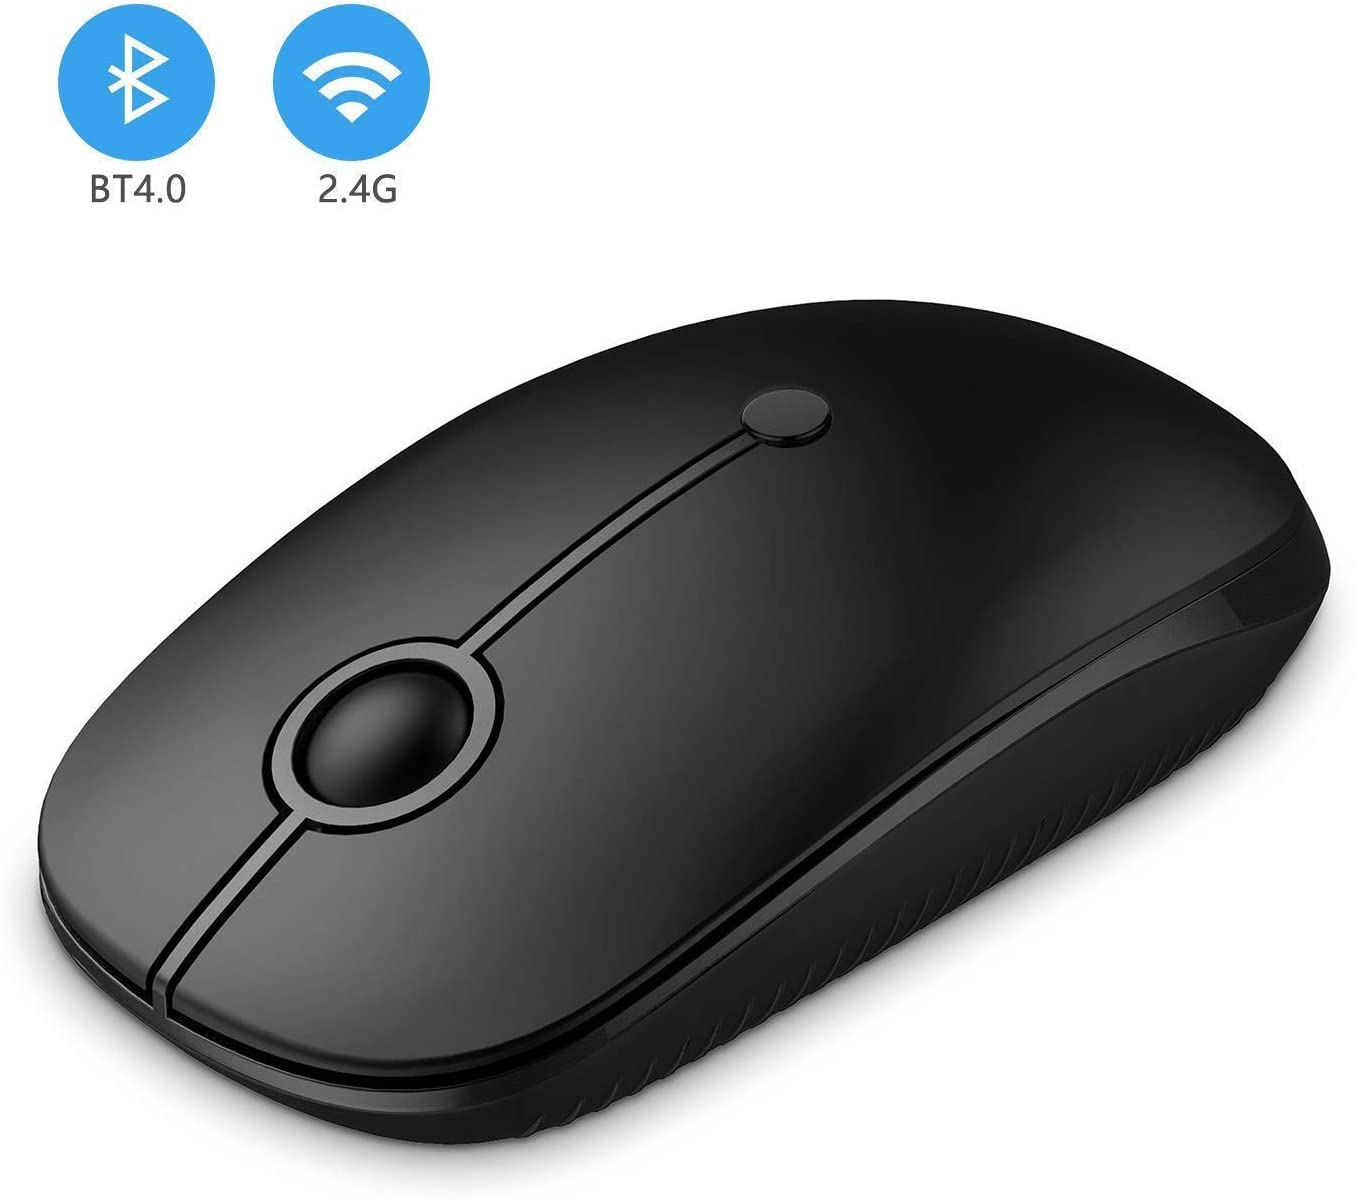 Jelly Comb 2.4G Ratón Inalámbrico + Bluetooth Mouse Dual Models Wireless y Bluetooth Silent para Tablet PC Macbook Smartphone-Negro